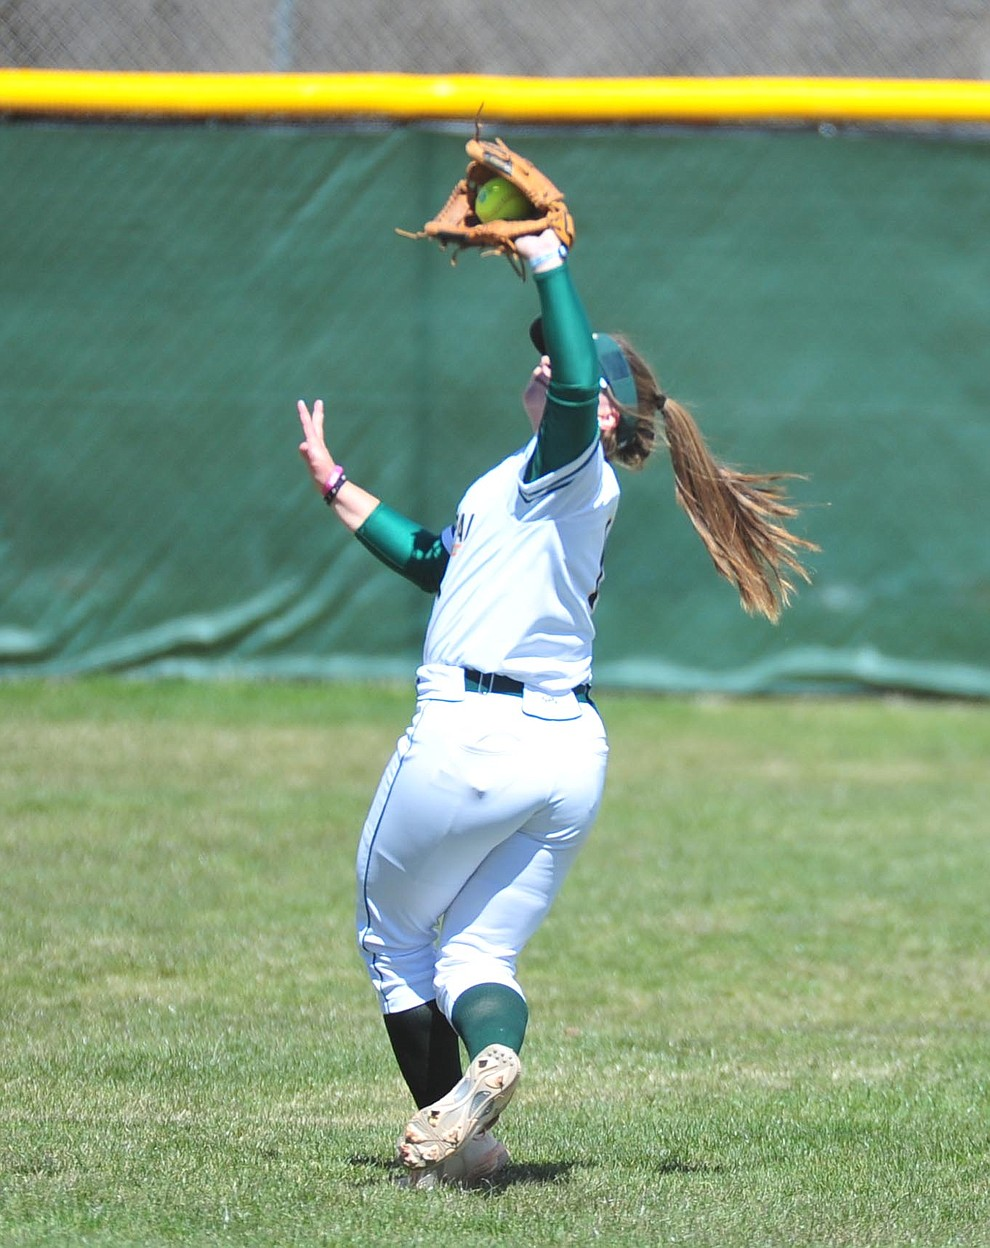 Yavapai's Brianna Griffiths makes the play in shallow left field as the Roughriders take on the Chandler Gilbert Coyotes Tuesday, March 19, 2018 in Prescott.